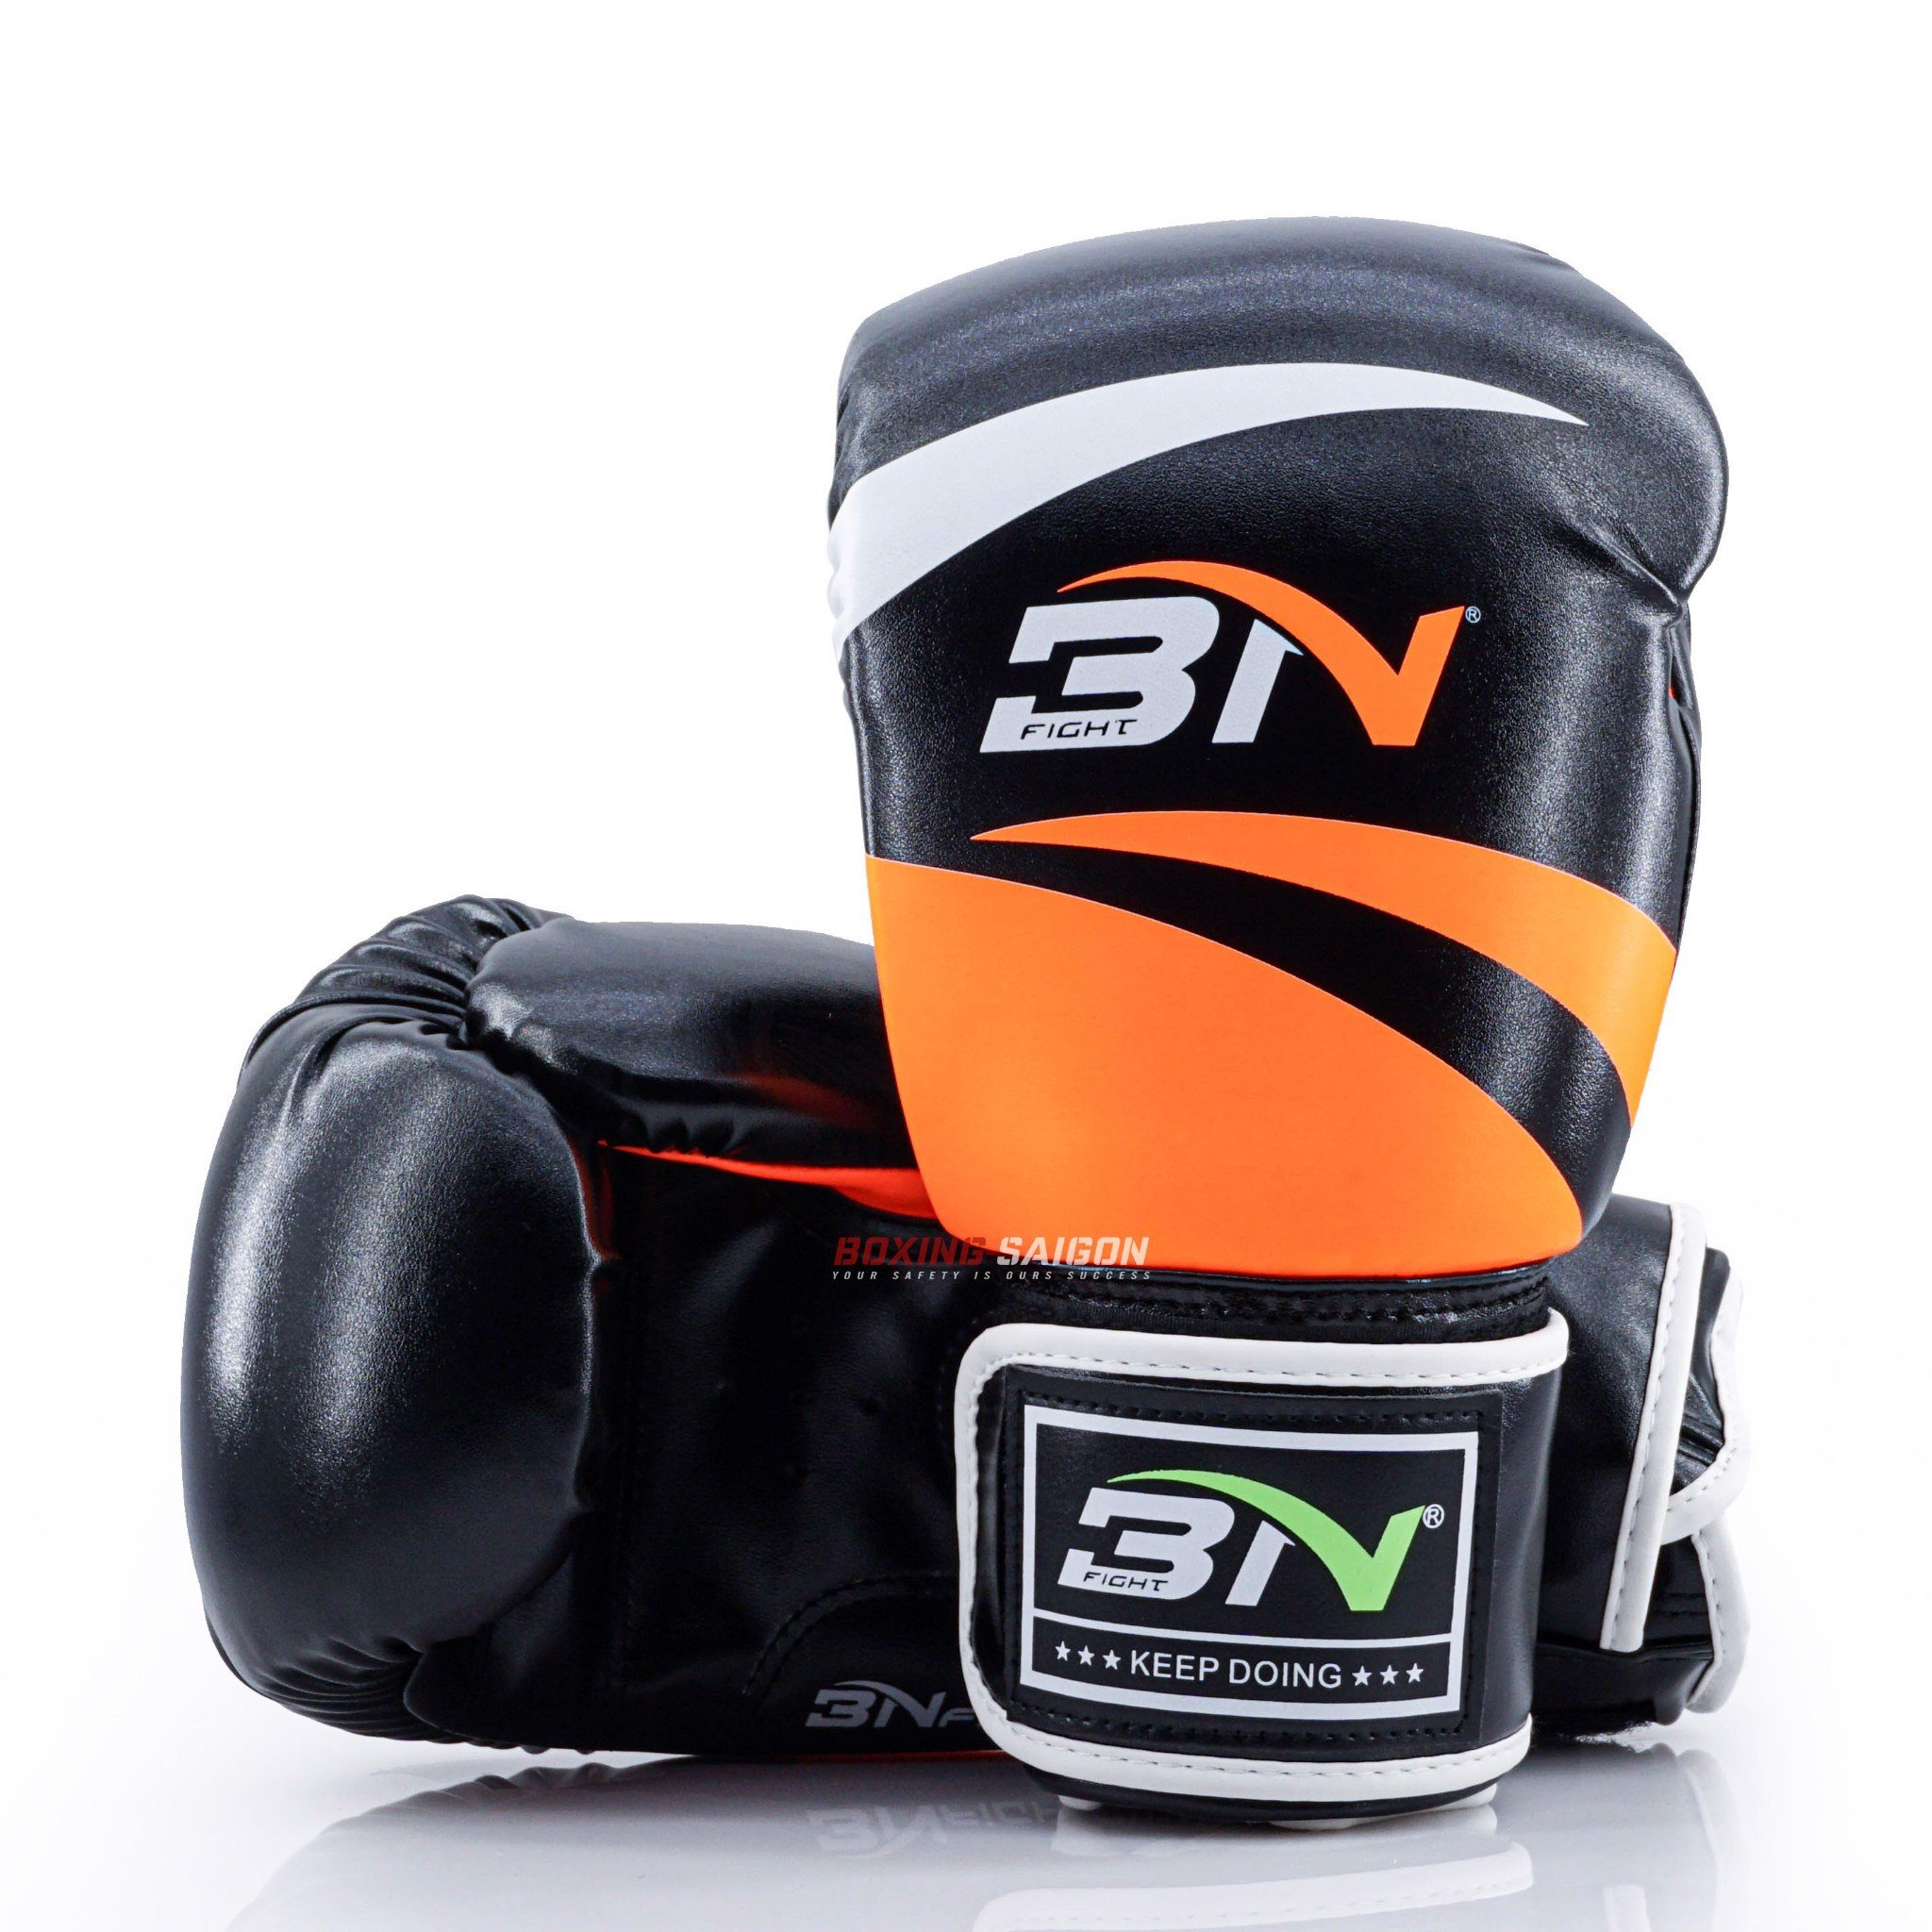 Găng Tay Bn Boxing Gloves - Black/Orange